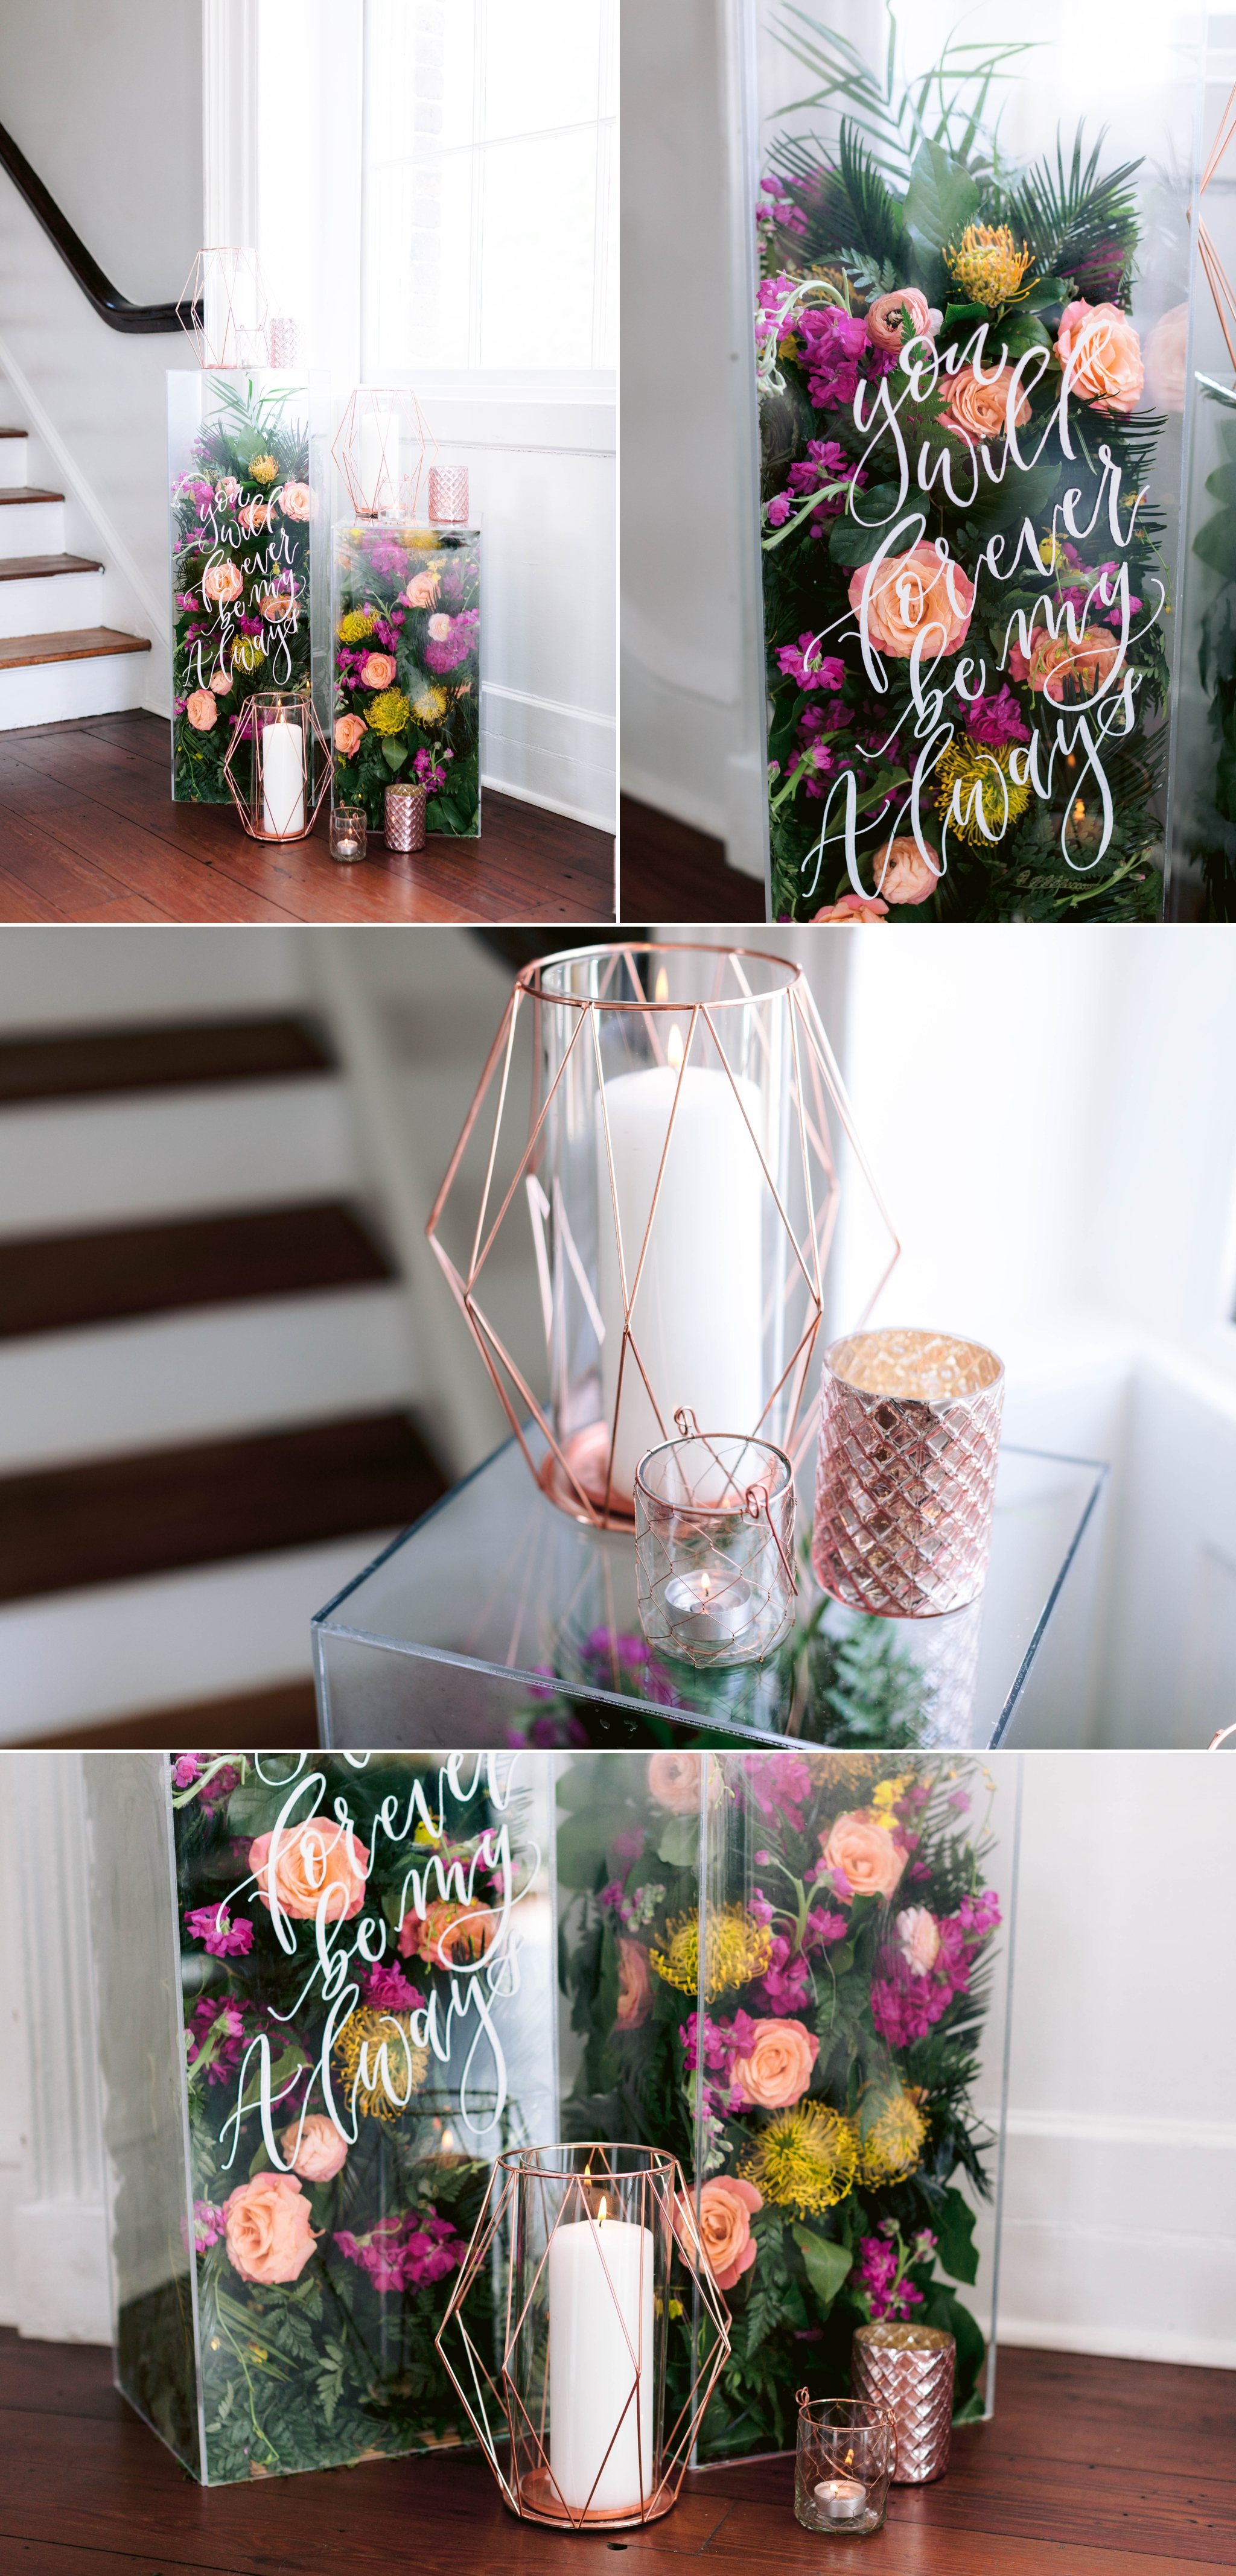 Welcome to our Wedding Signs and Decorations with a ton of tropical colorful flowers in Acrylic Containers with gorgeous calligraphy - Navy, Green, Gold and Berry colored Tropical Wedding Inspiration for your Wedding in Hawaii! - Honolulu, Oahu, Hawaii Photographer